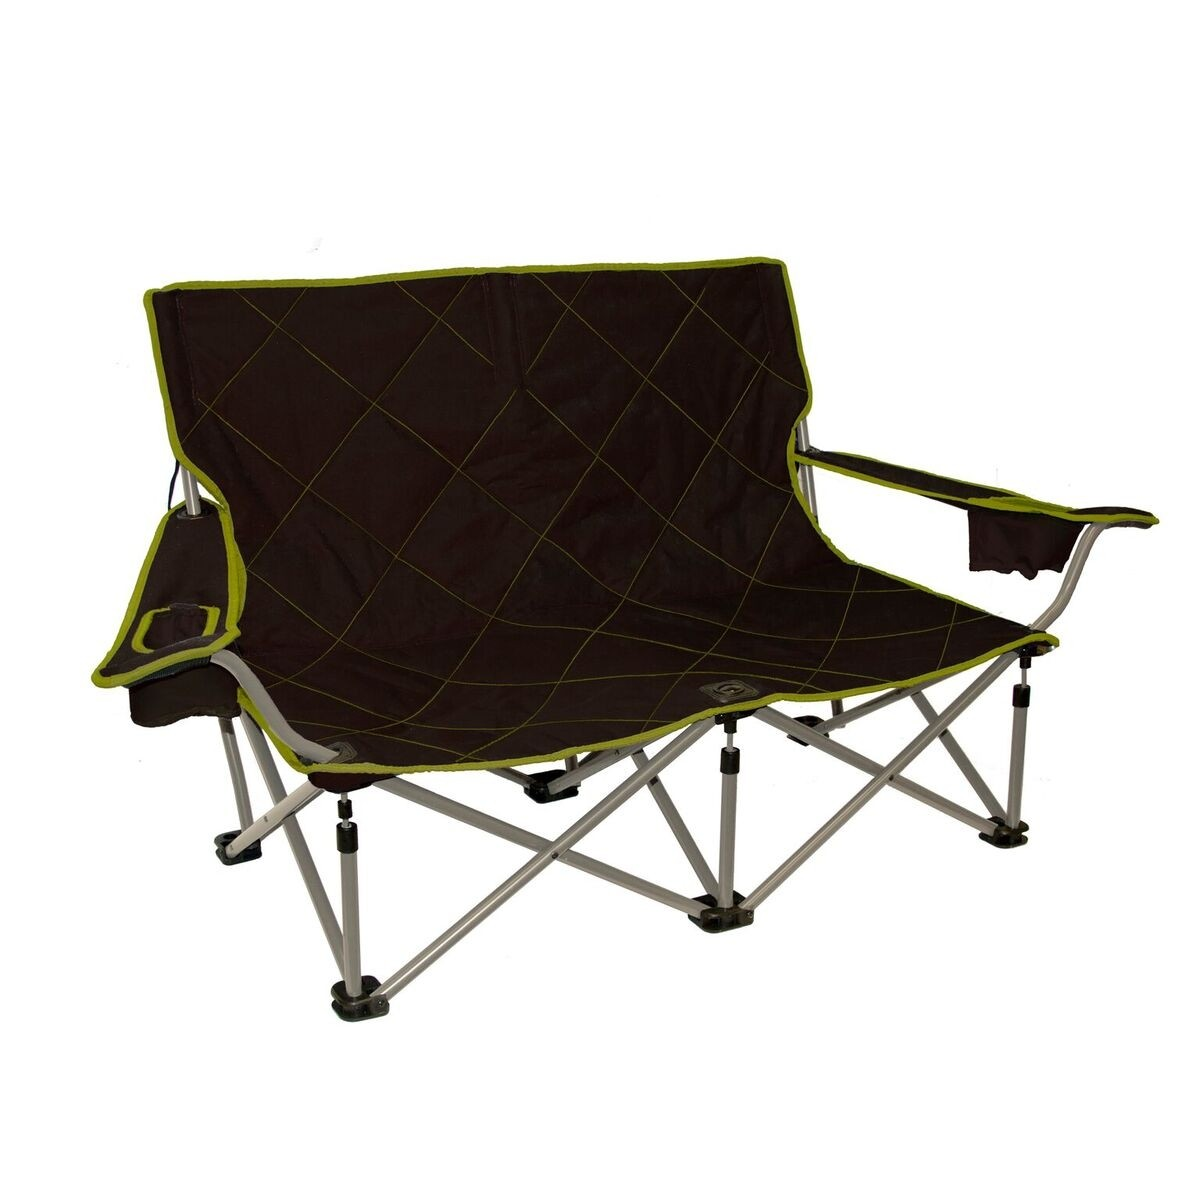 Shorty Camp Couch by TravelChair